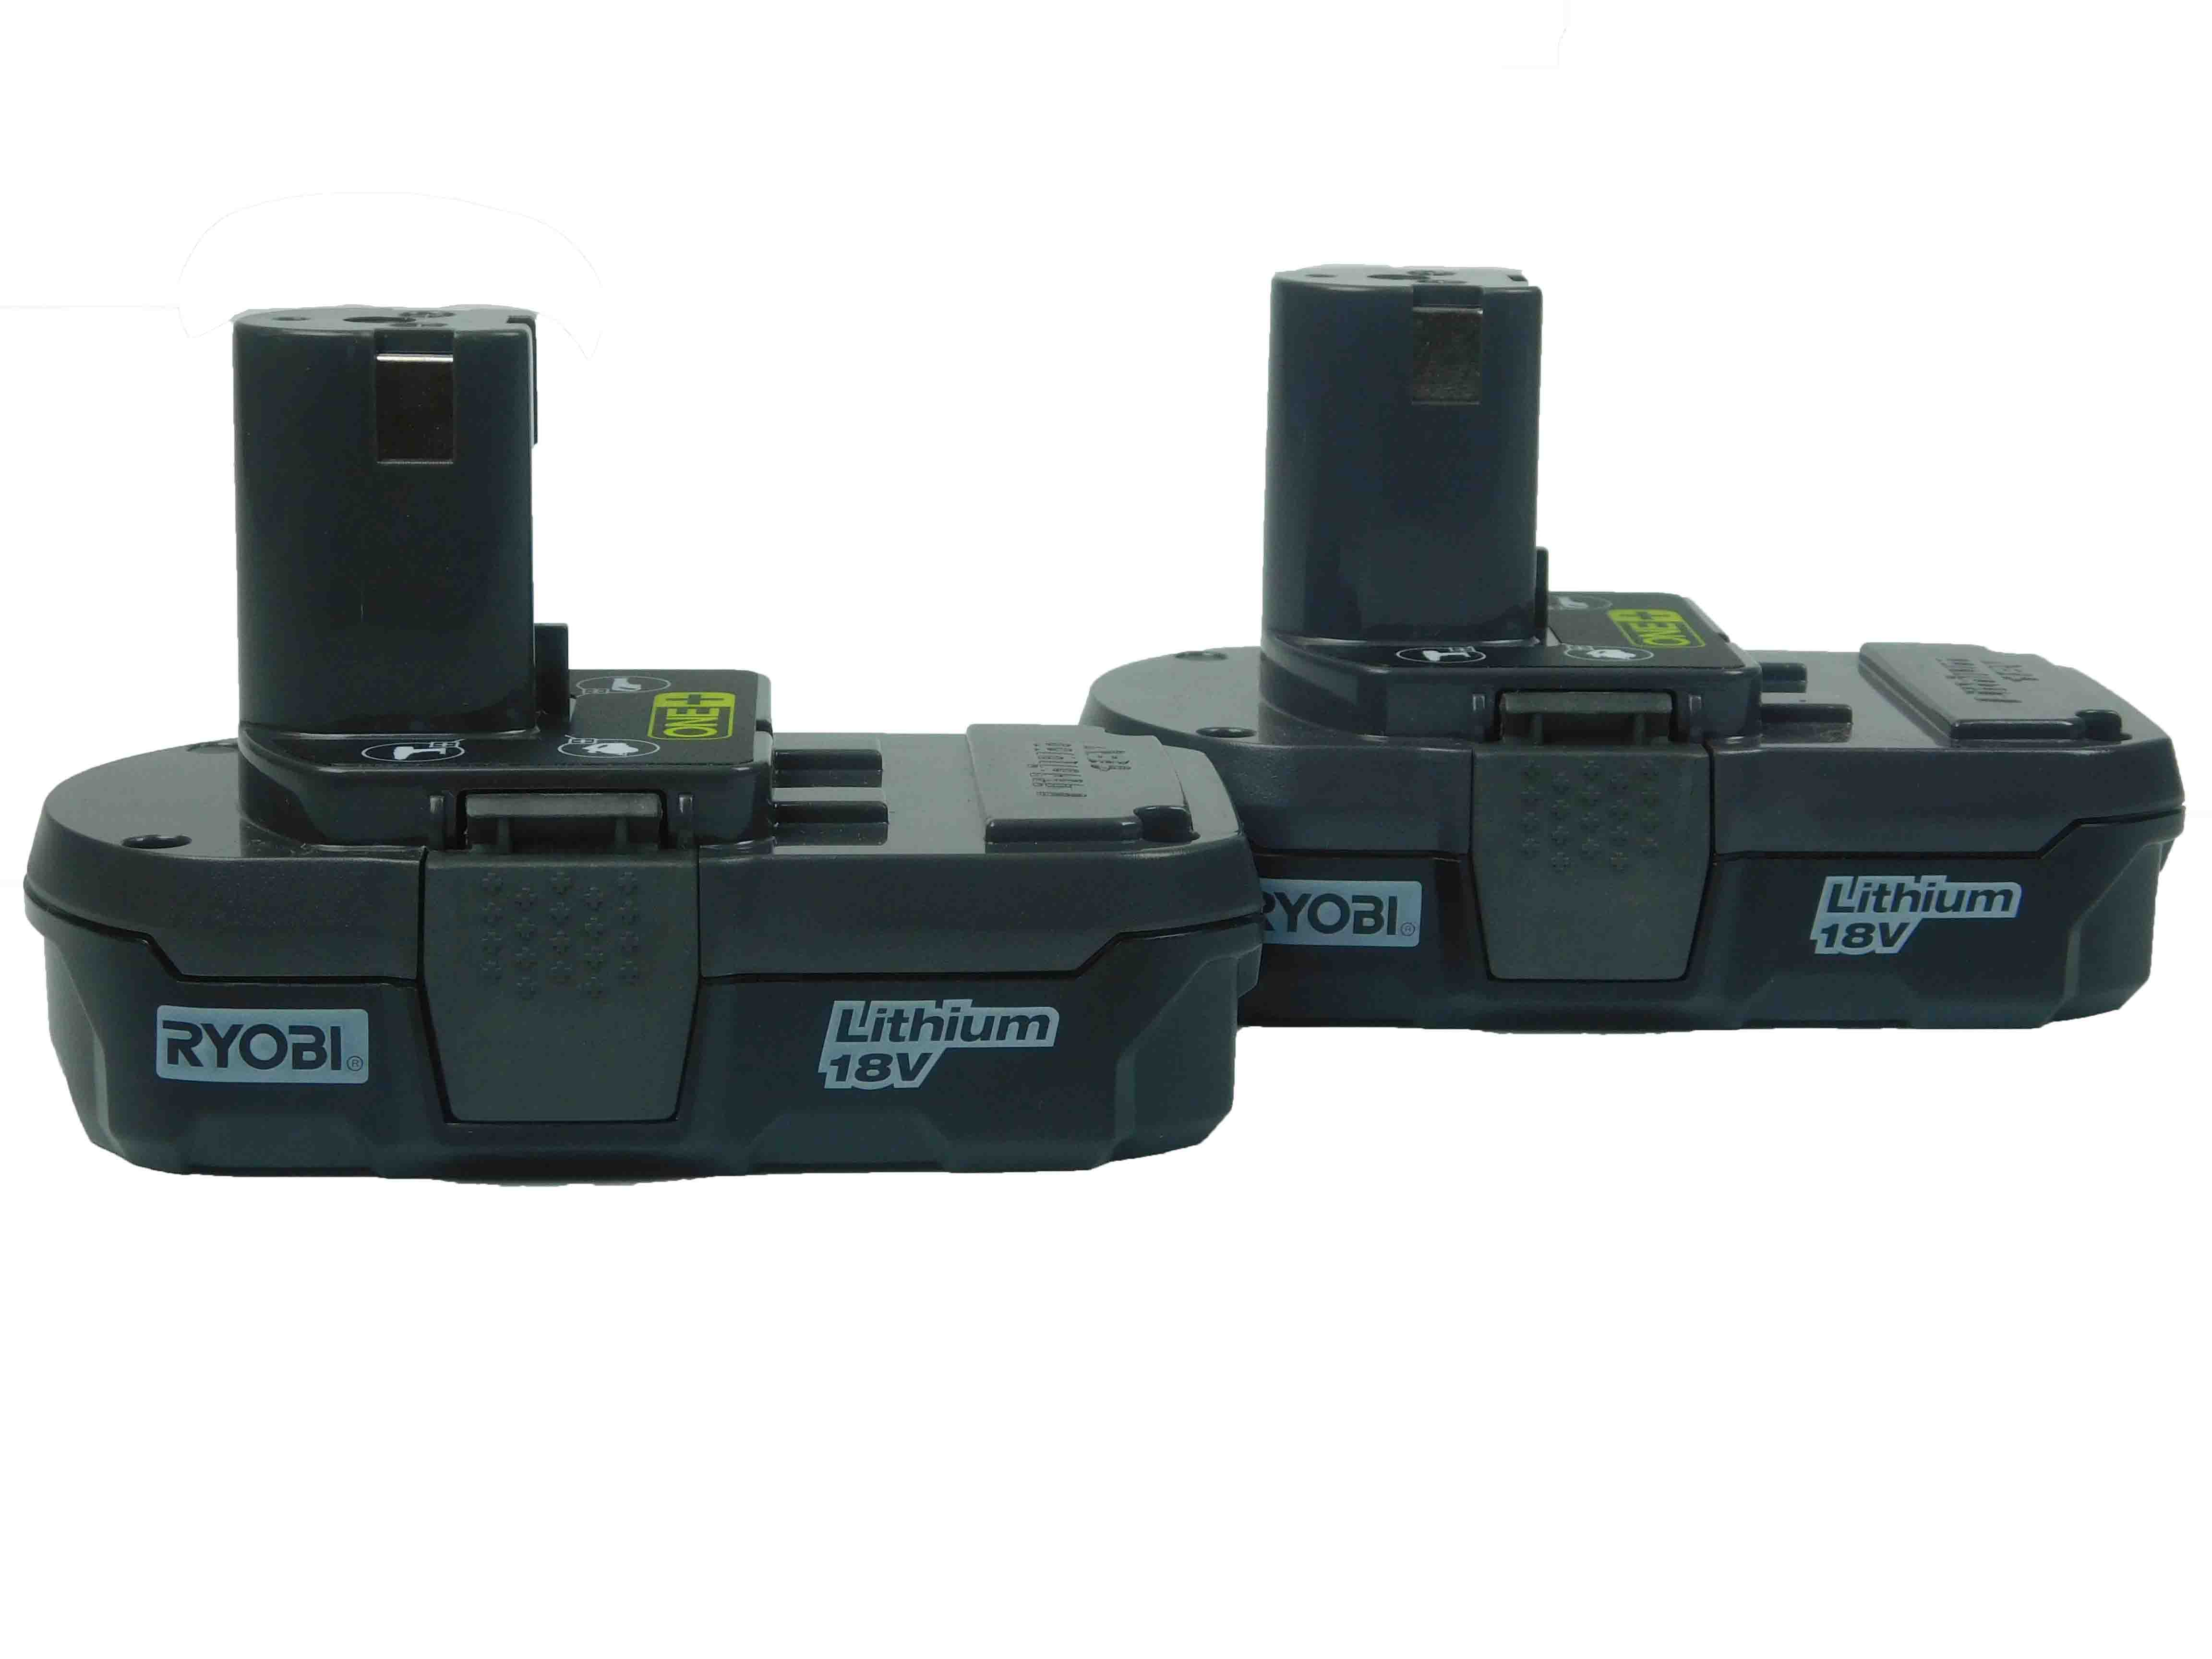 Ryobi-One-P102-18V-Lithium-Ion-Battery-Two-Pack-image-3